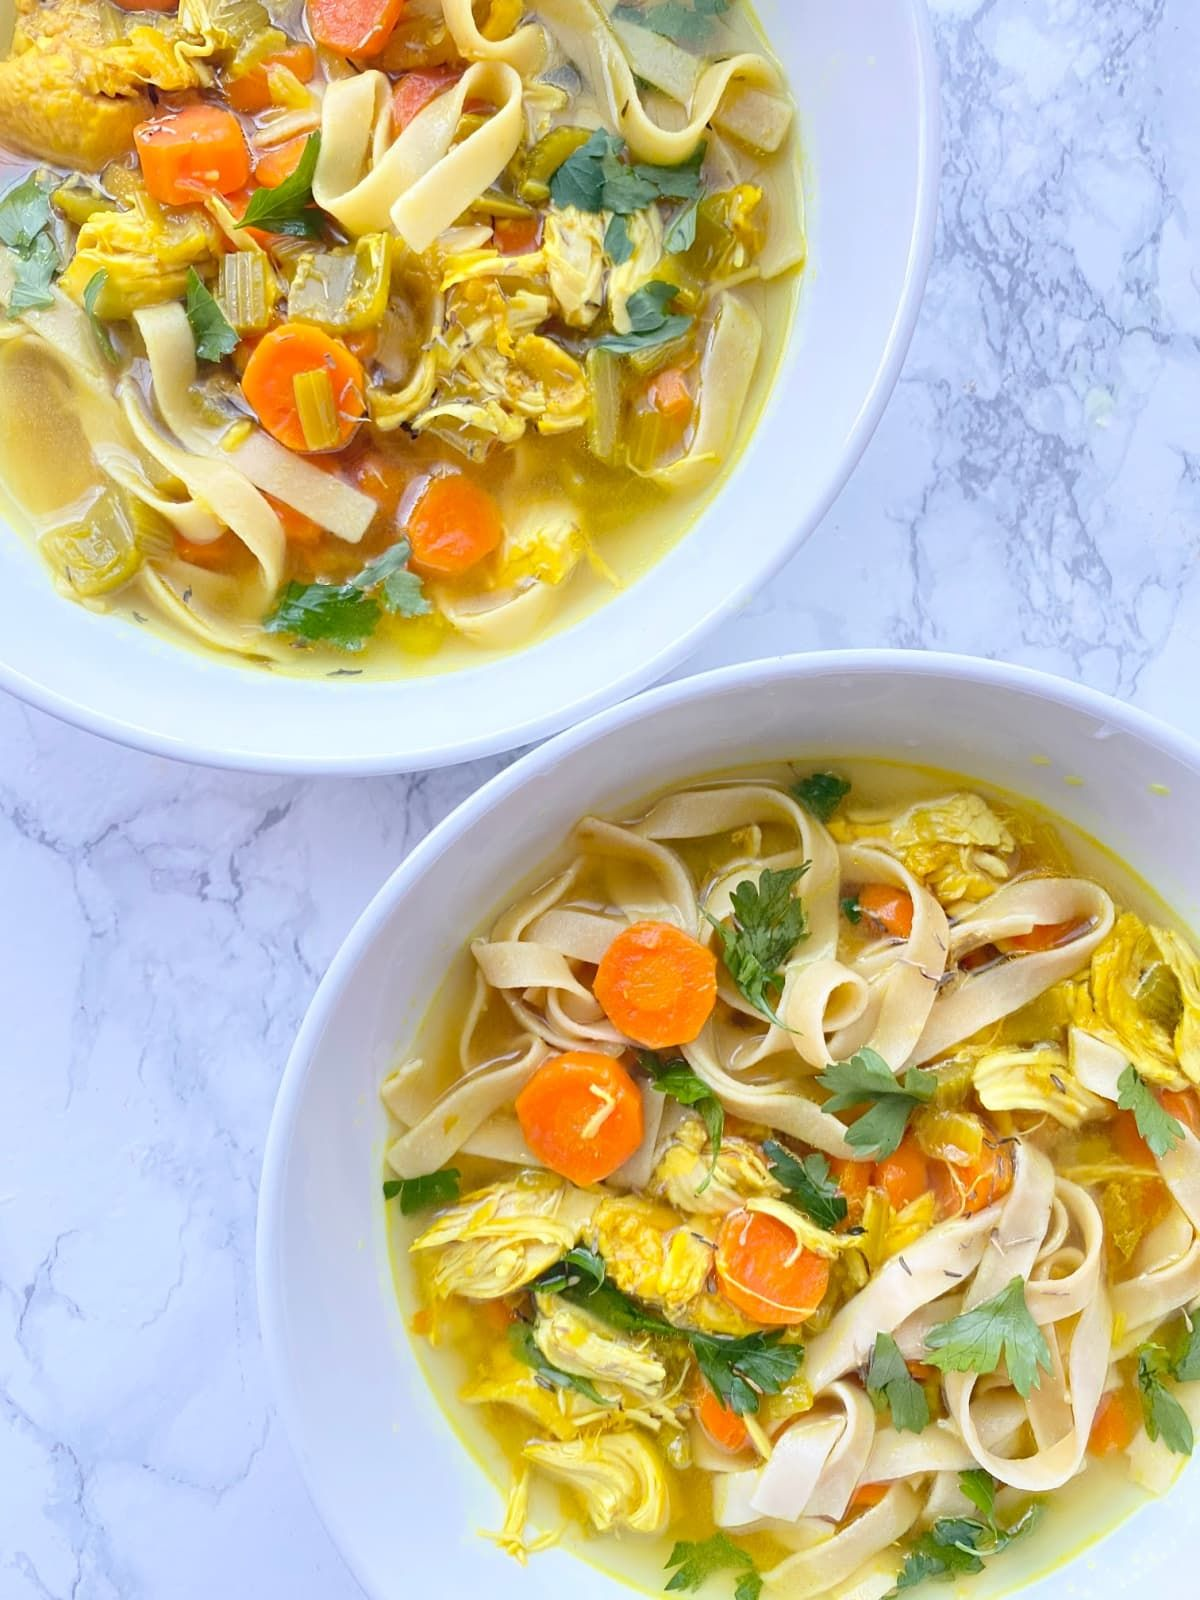 This Instant Pot Chicken Noodle Soup is packed with feel